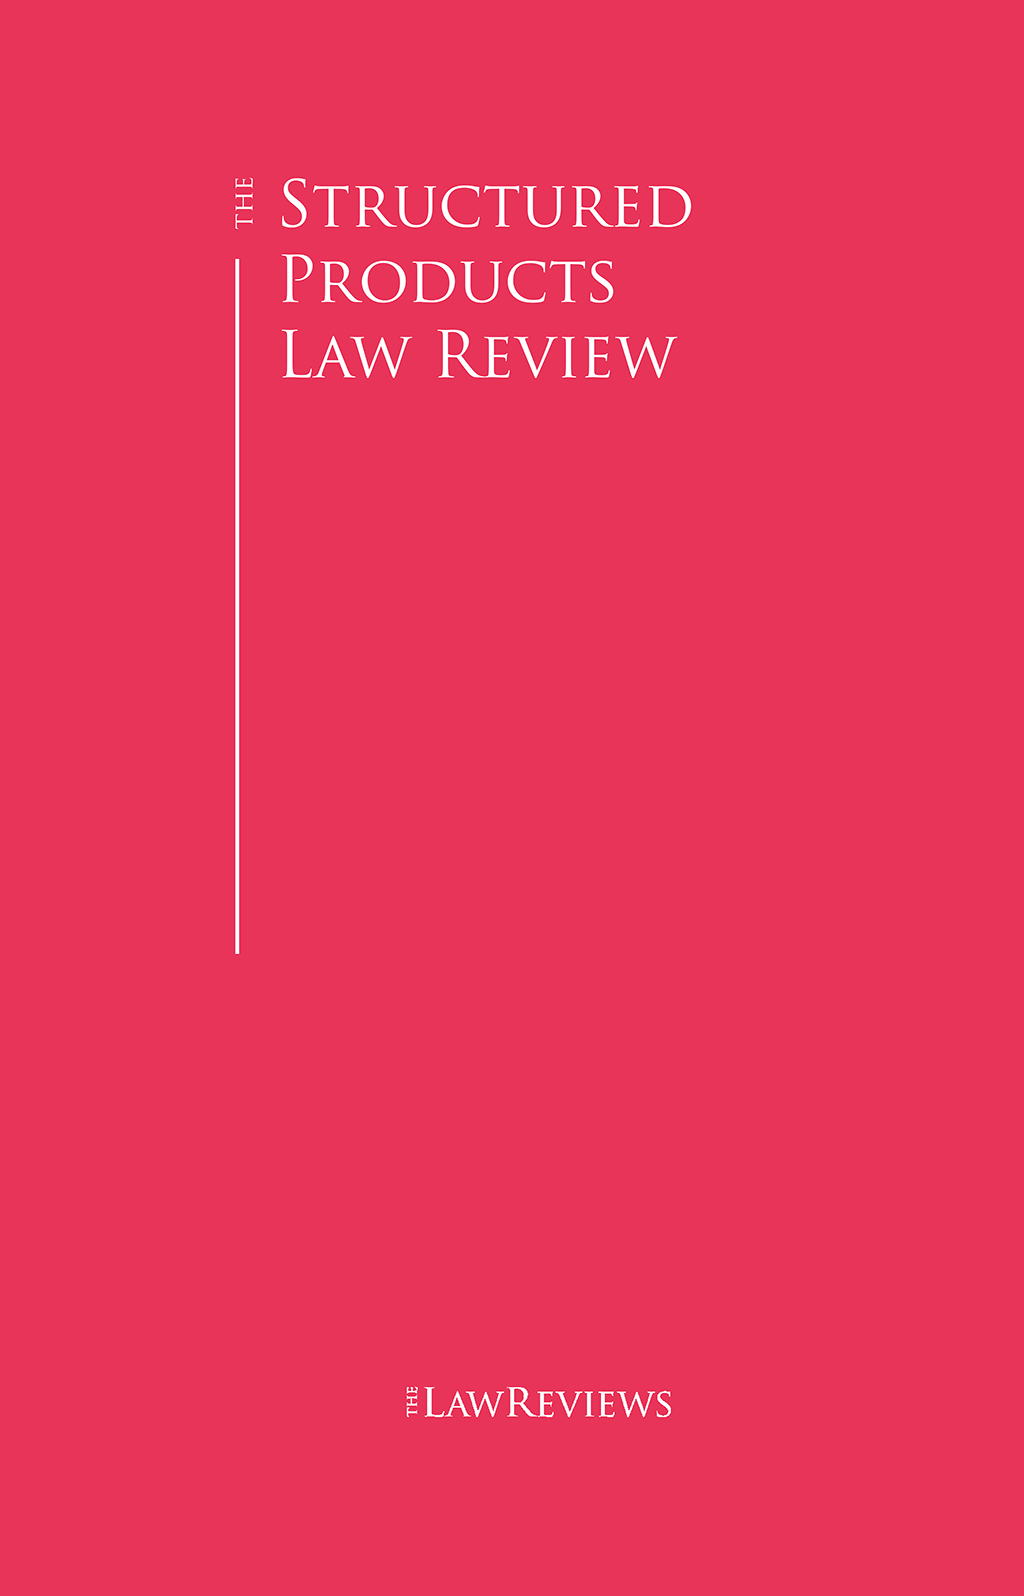 The Structured Products Law Review